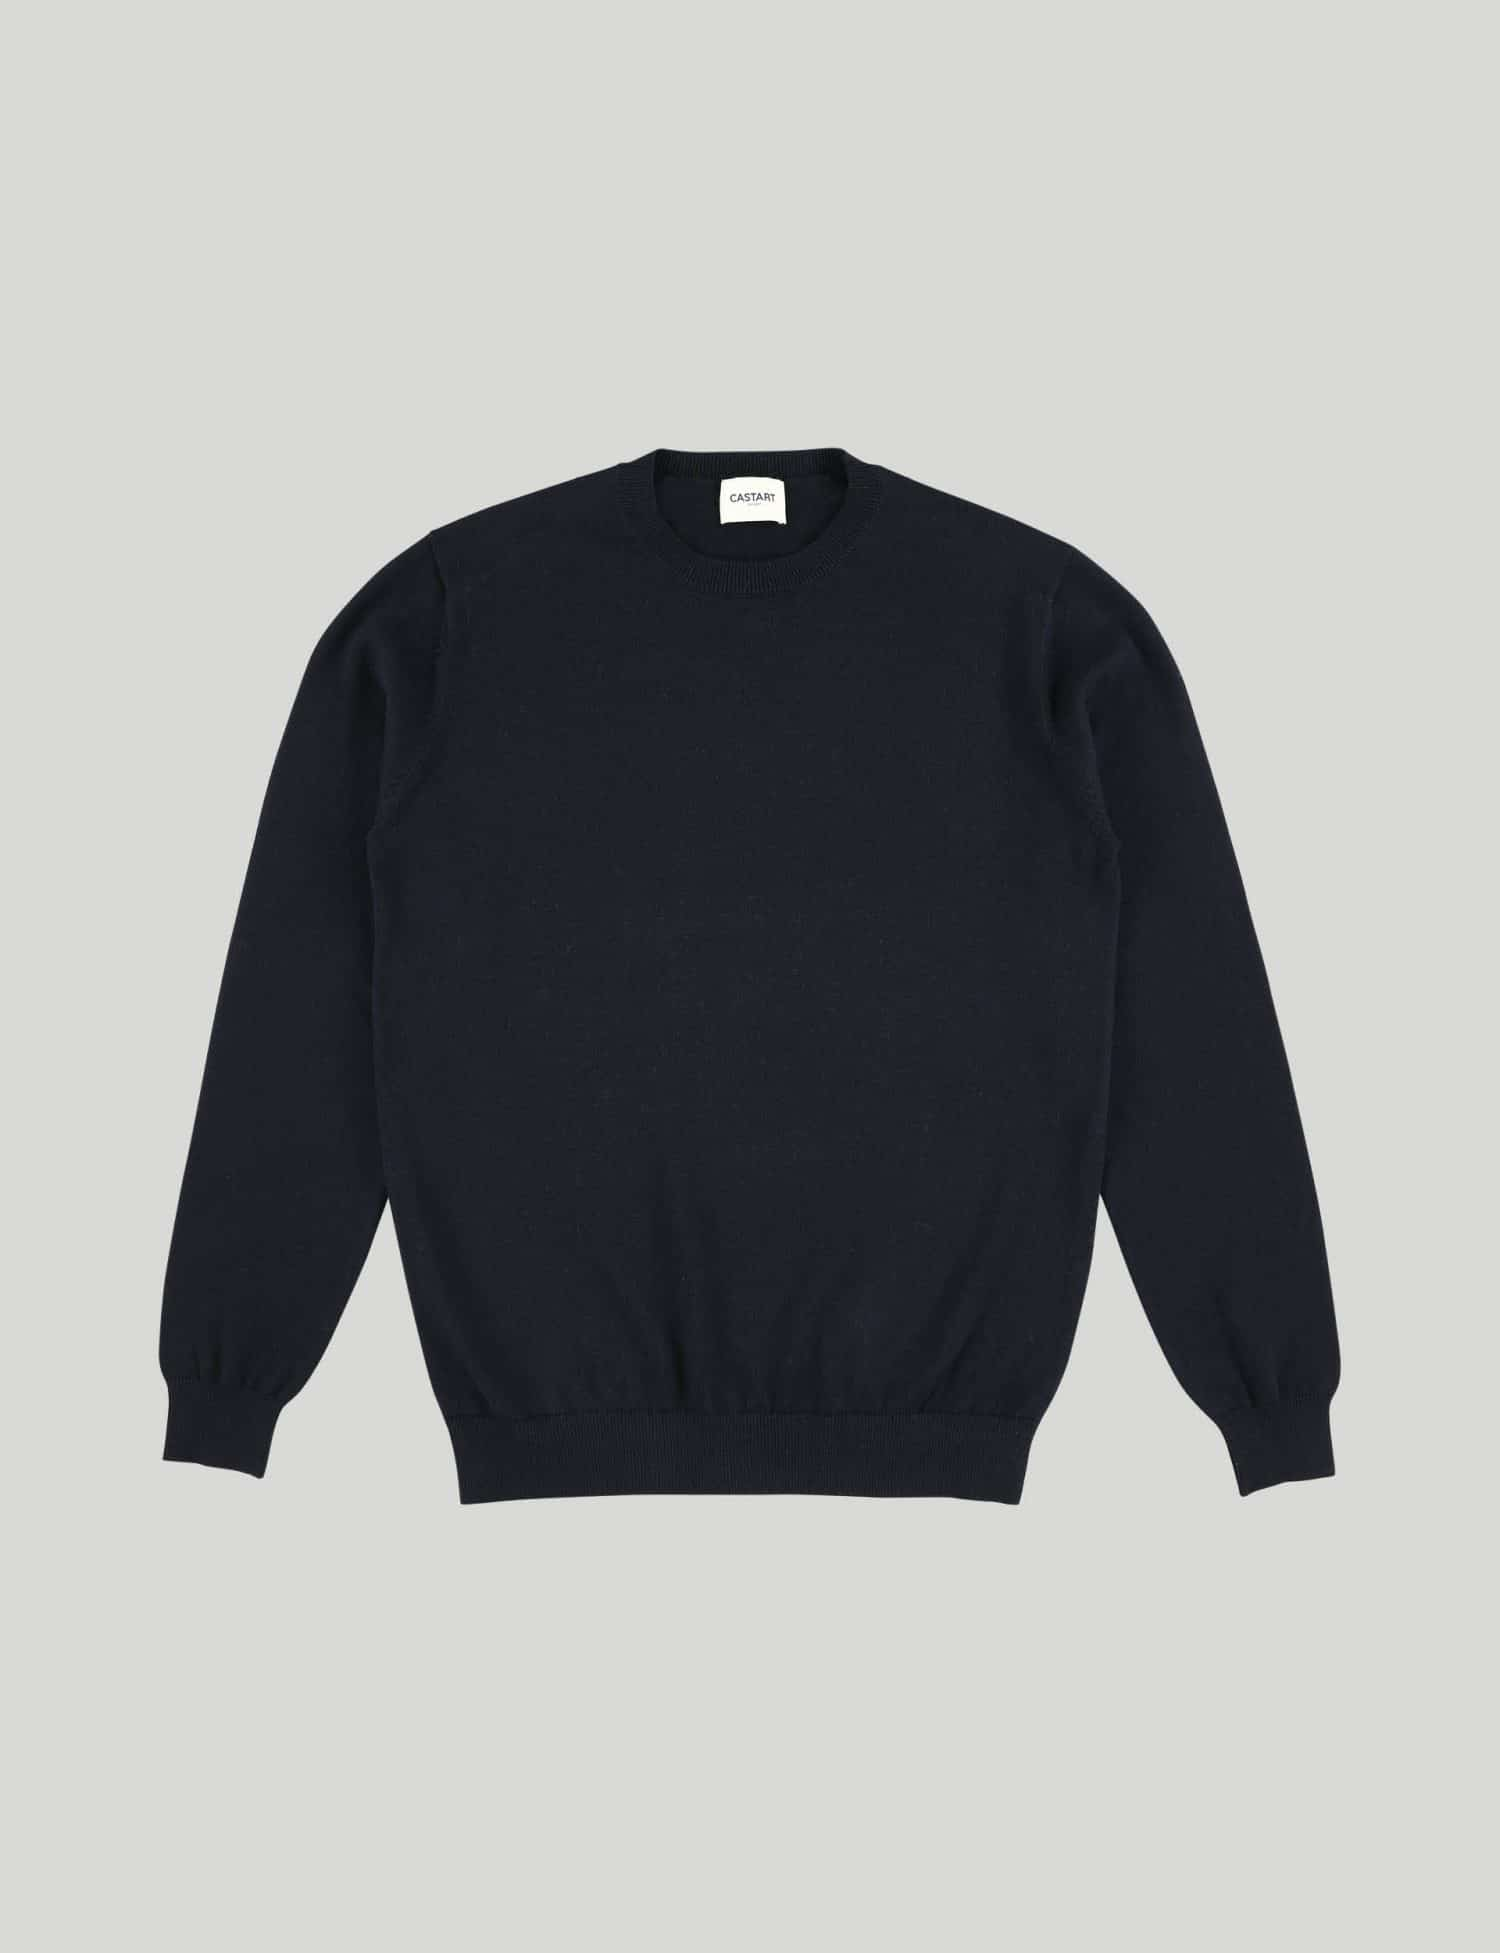 Castart - Shrubs knitwear - Navy Blue